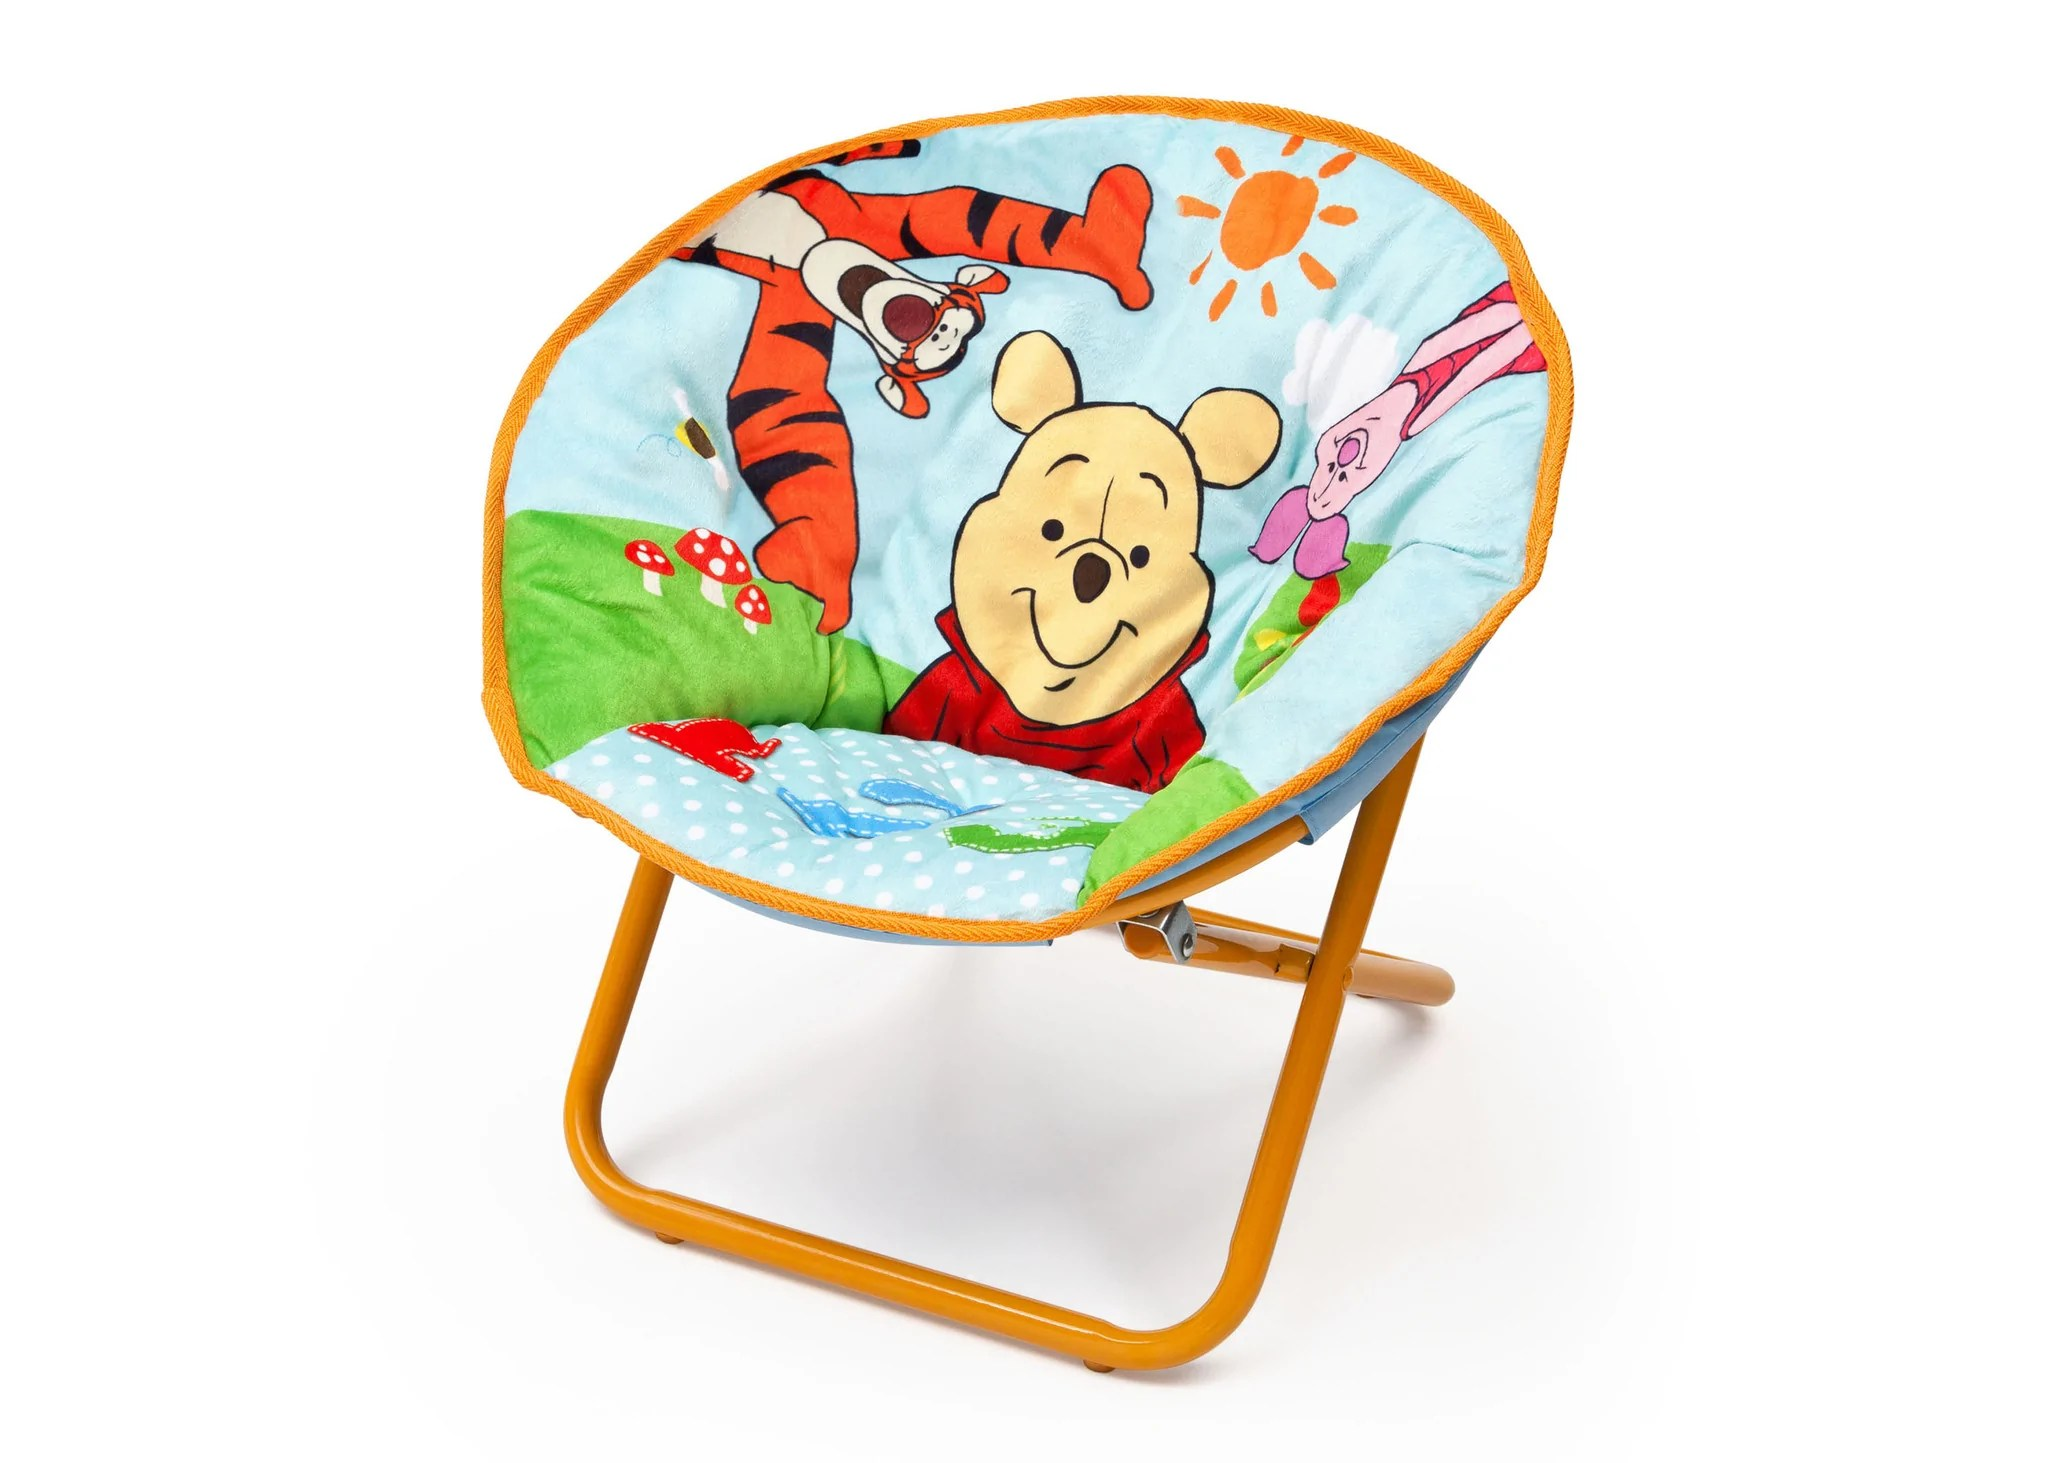 mickey mouse saucer chair uk high top patio chairs winnie the pooh delta children eu pim